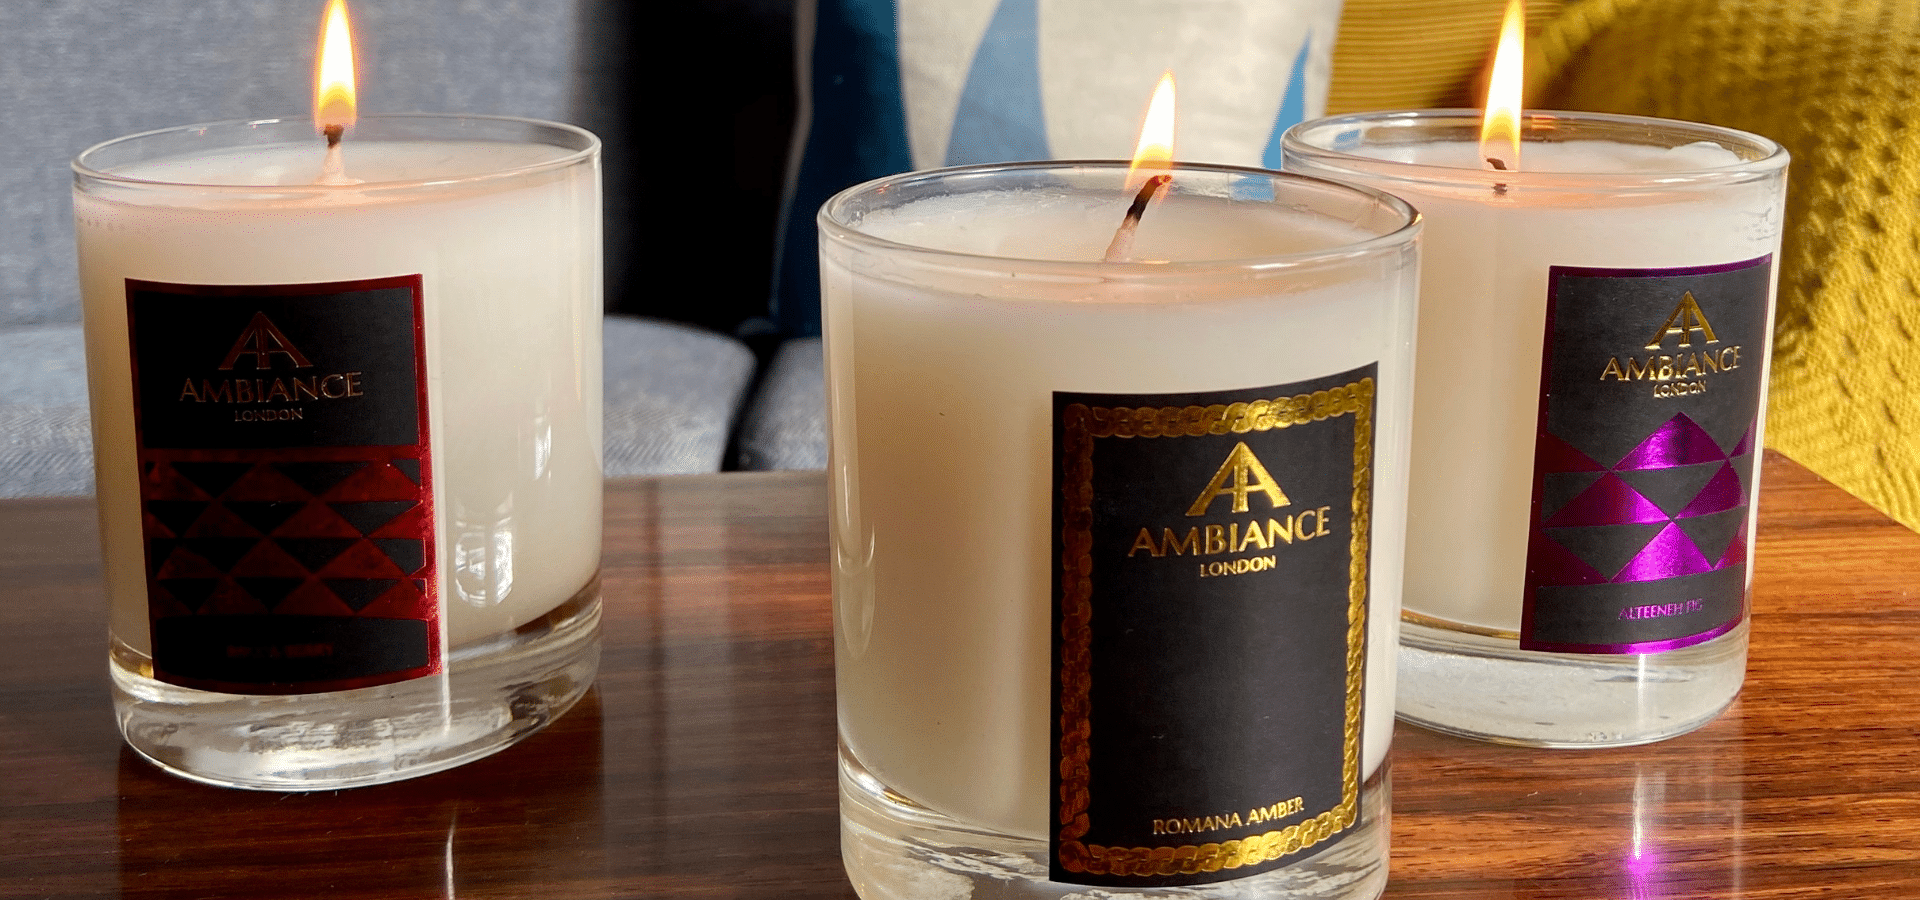 ancienne ambiance luxury scented candles for the home | christmas gift guide